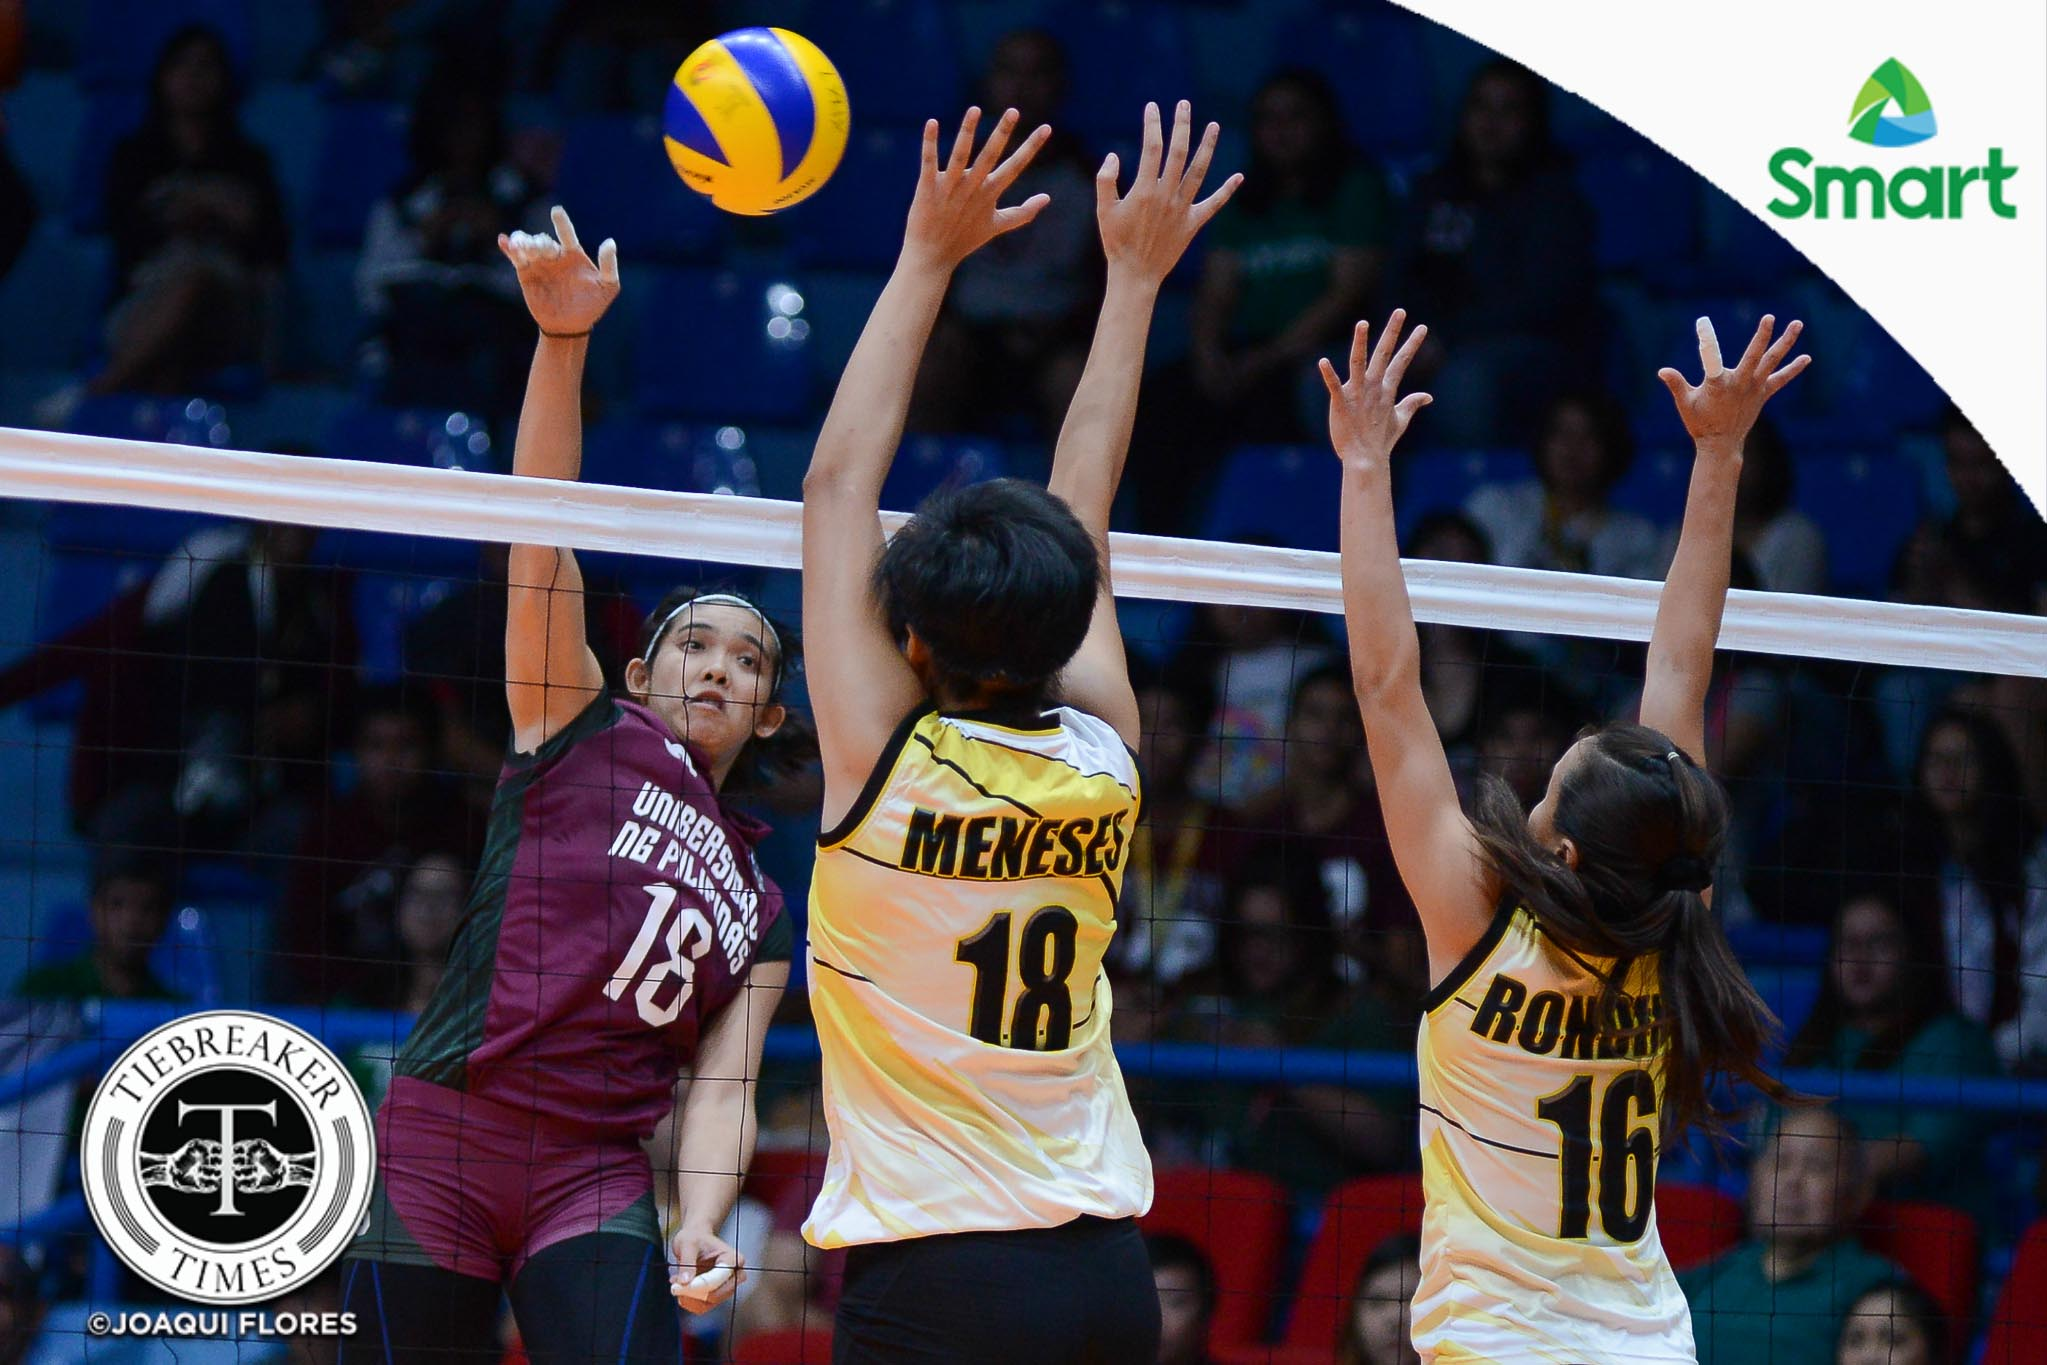 Tiebreaker Times Lady Maroons stay undefeated, outmuscle Golden Tigresses News UAAP UP UST Volleyball  UST Women's Volleyball UP Women's Volleyball UAAP Season 79 Women's Basketball UAAP Season 79 Pia Gaiser Kungfu Reyes Jerry Yee Isa Molde EJ Laure Diana Carlos Cherry Rondina Arielle Estranero